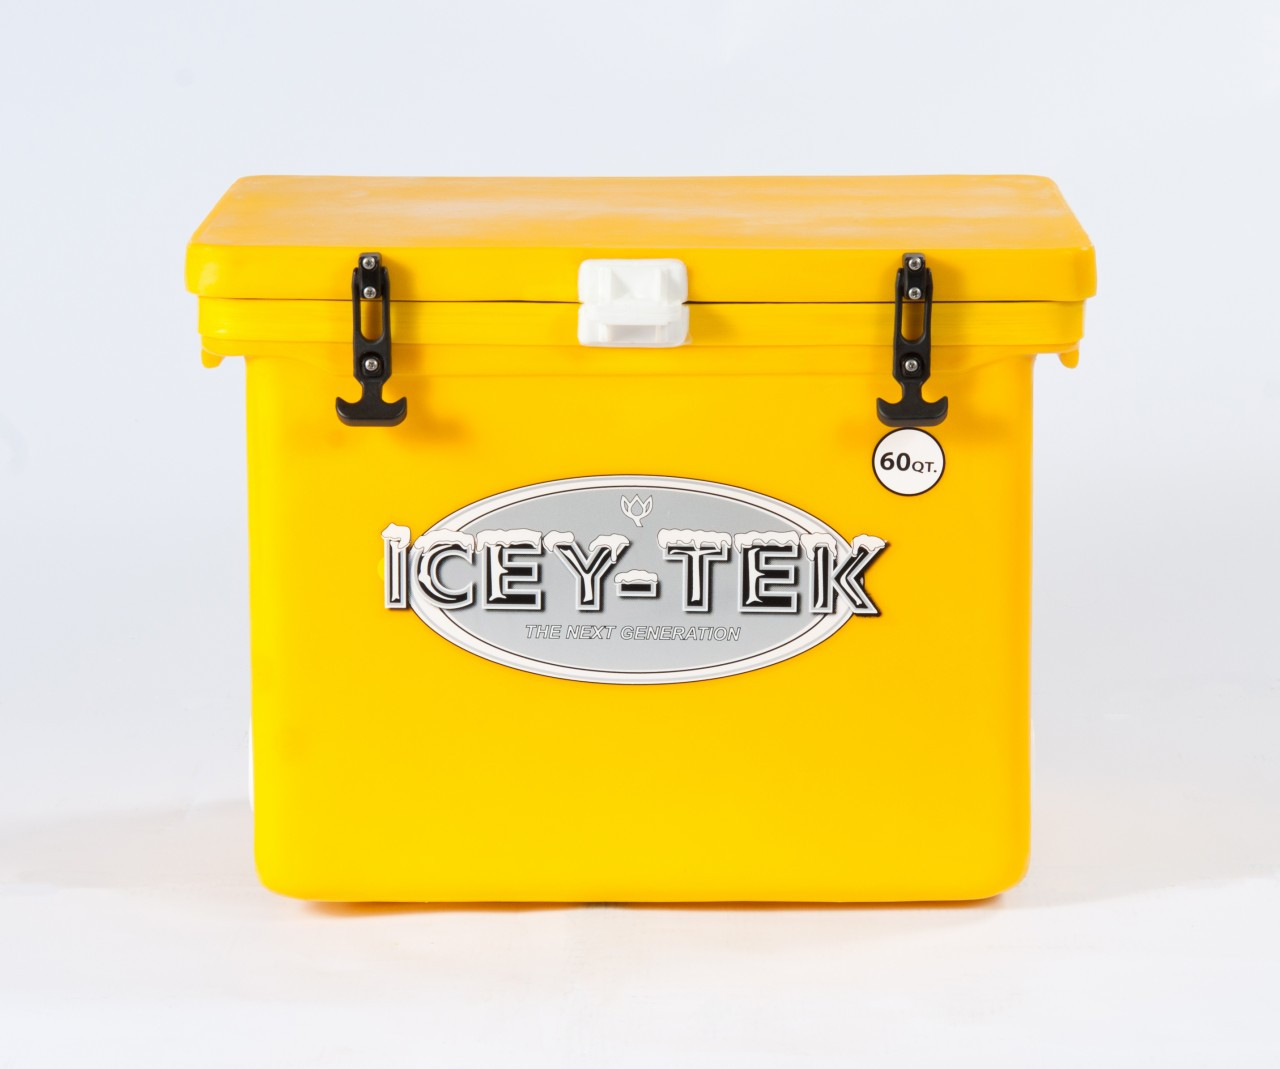 60 Quart Ice Chest I Cooler By Icey Tek